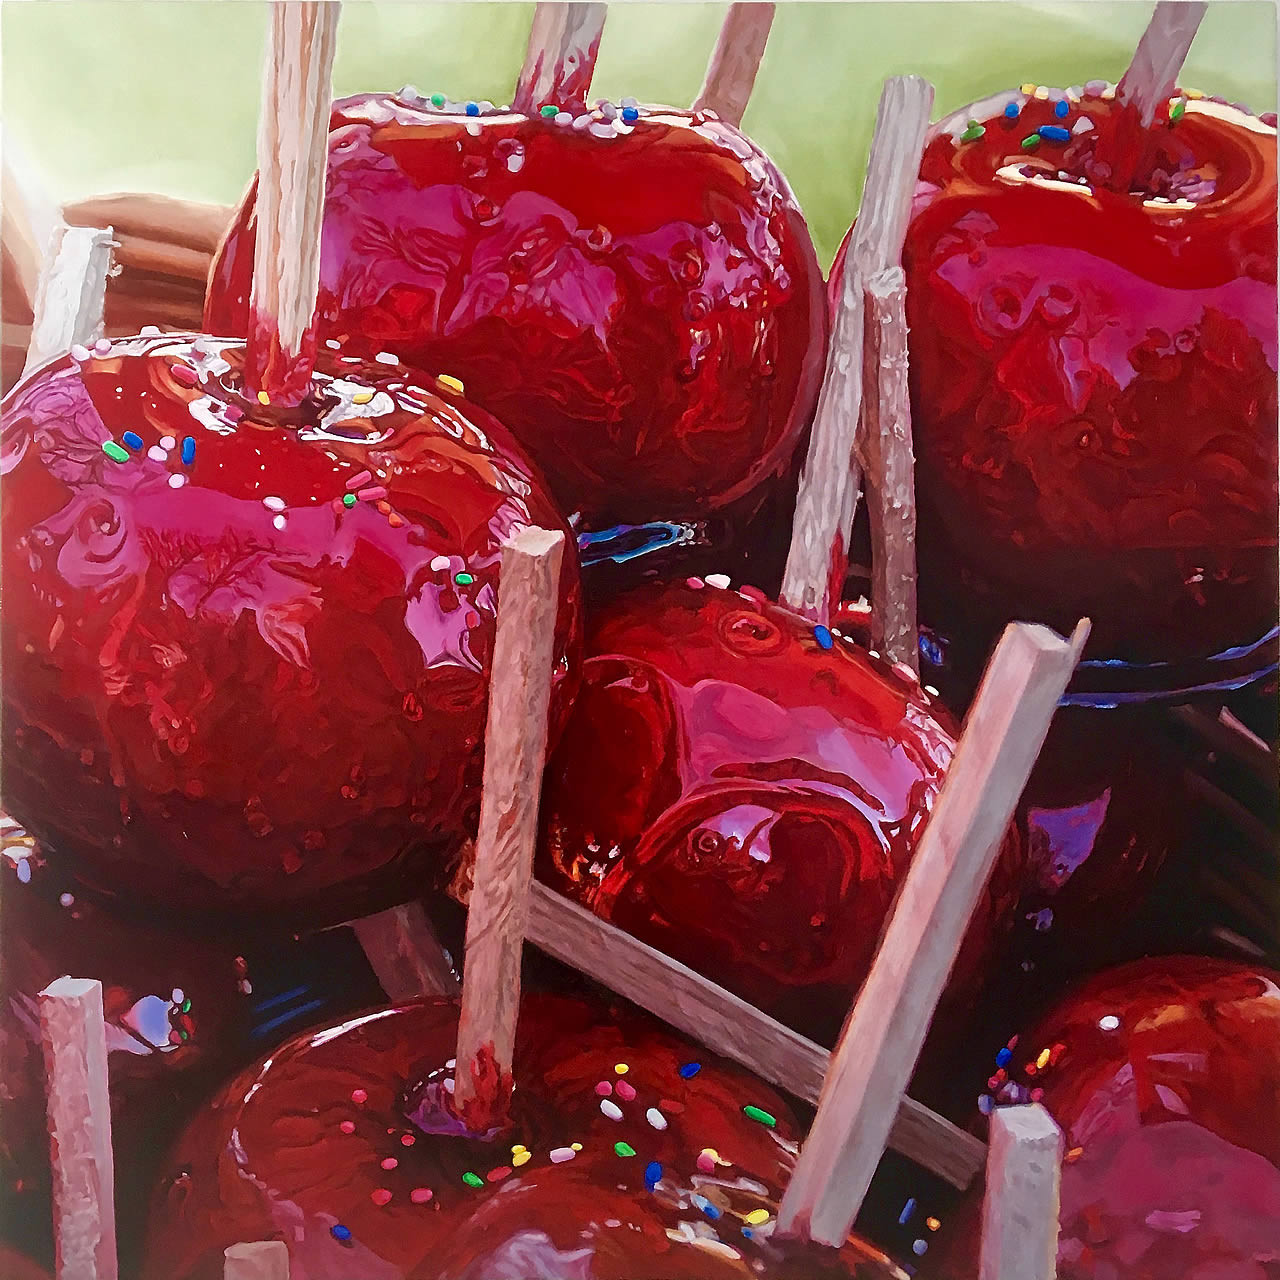 Candy Apple Reds